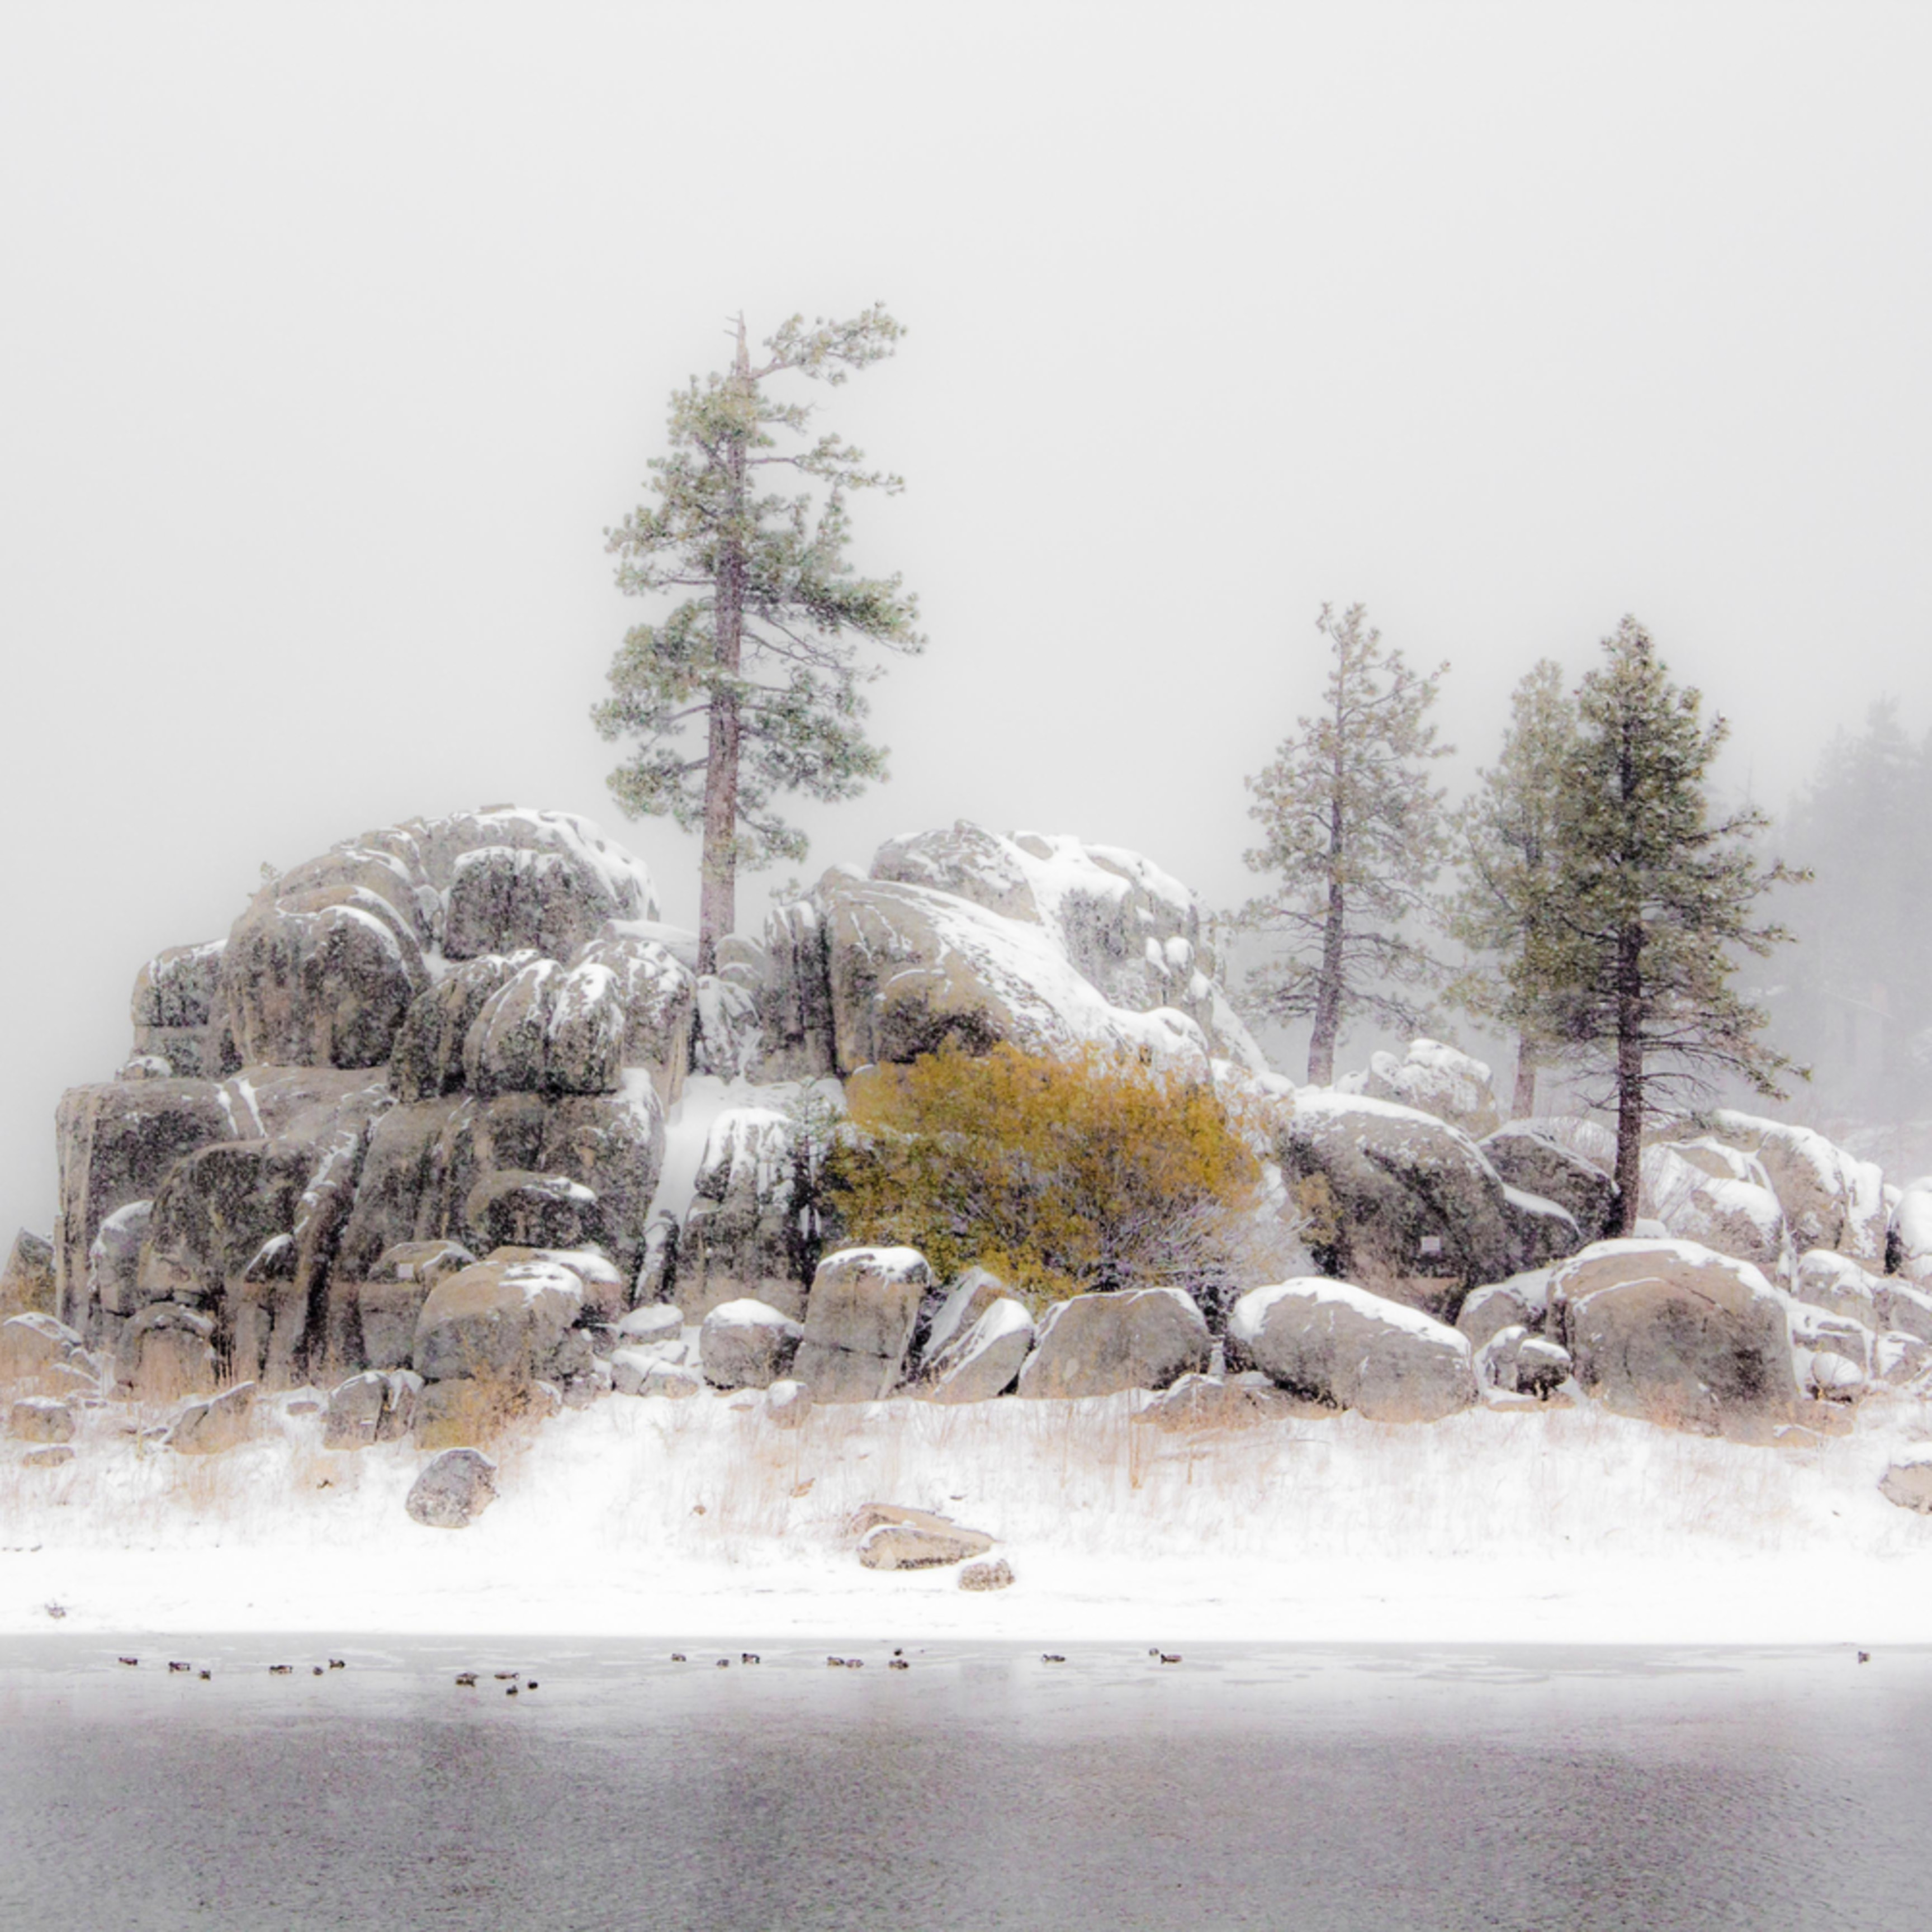 Rock outcrop in snow   big bear p7f9hw